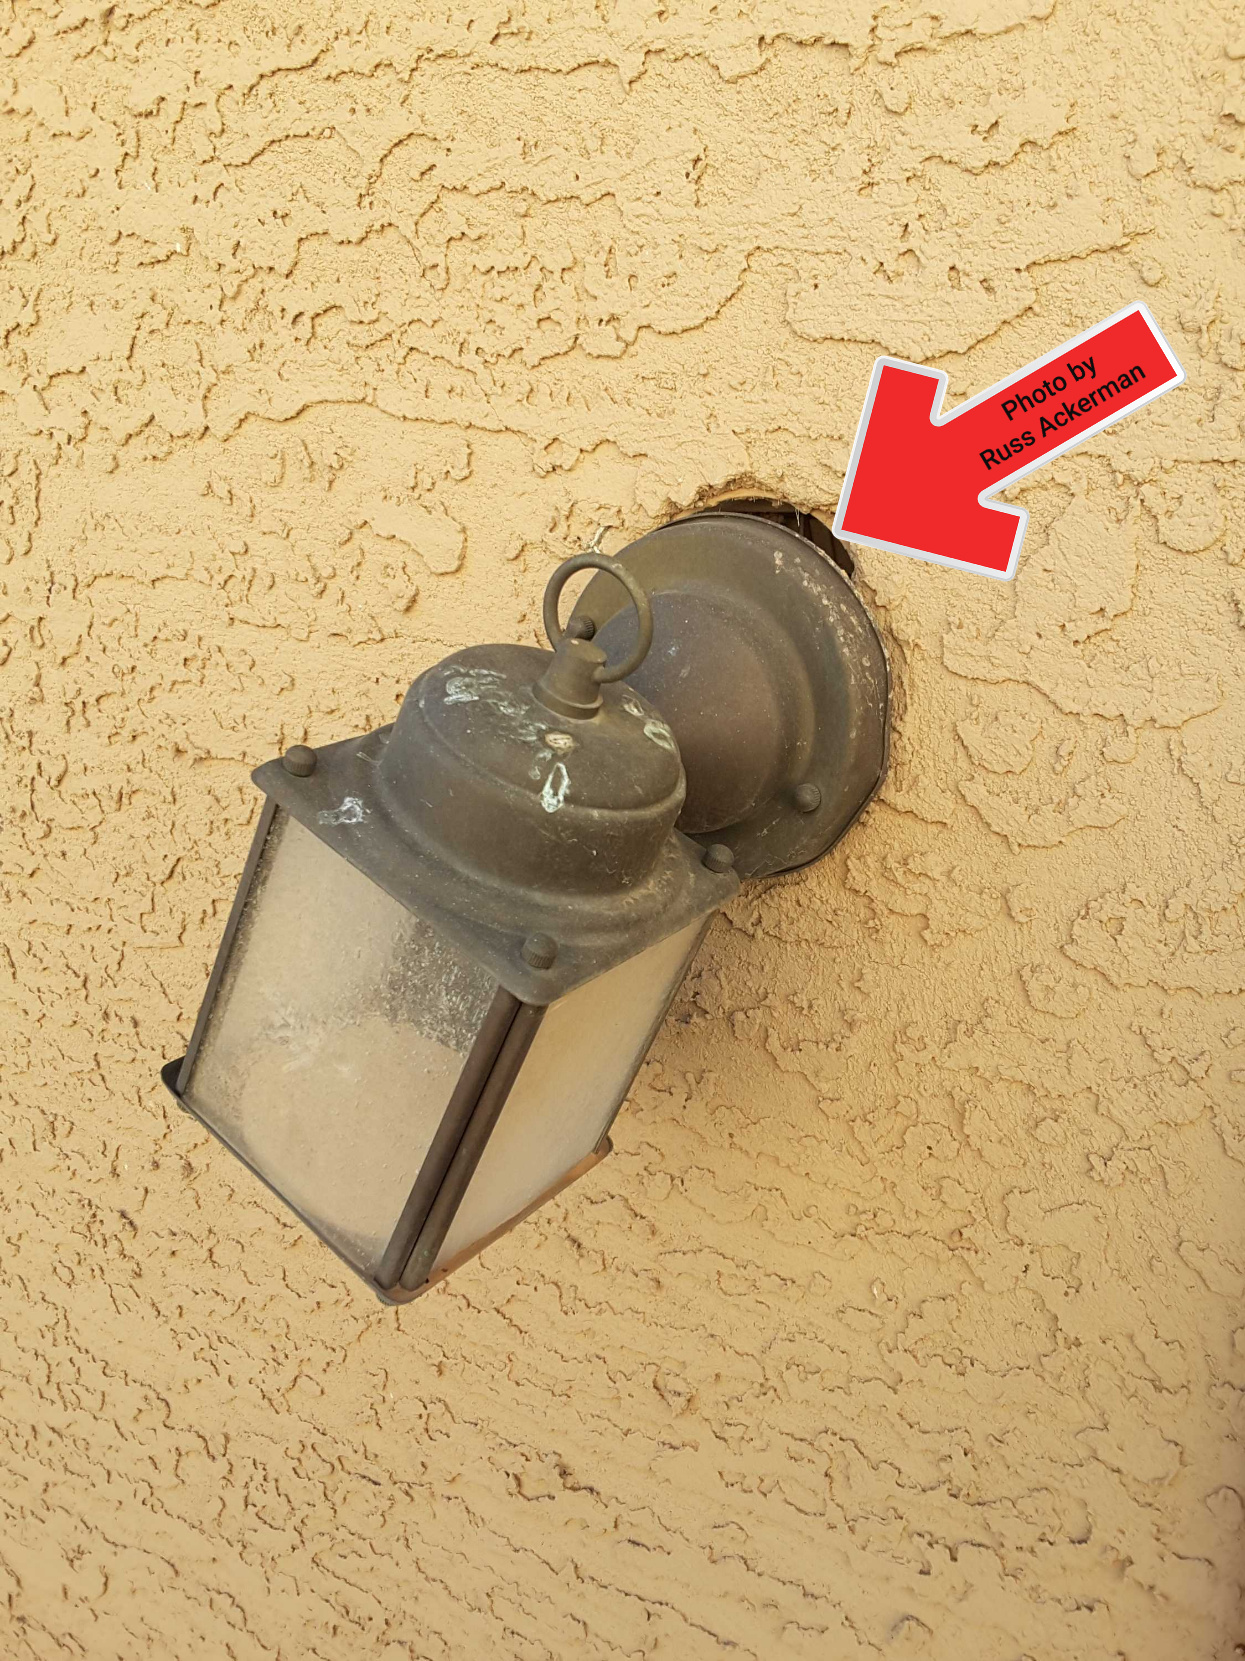 A loose light fixture, missing bulb and potential water entry point could have been an easy fix before listing the home.